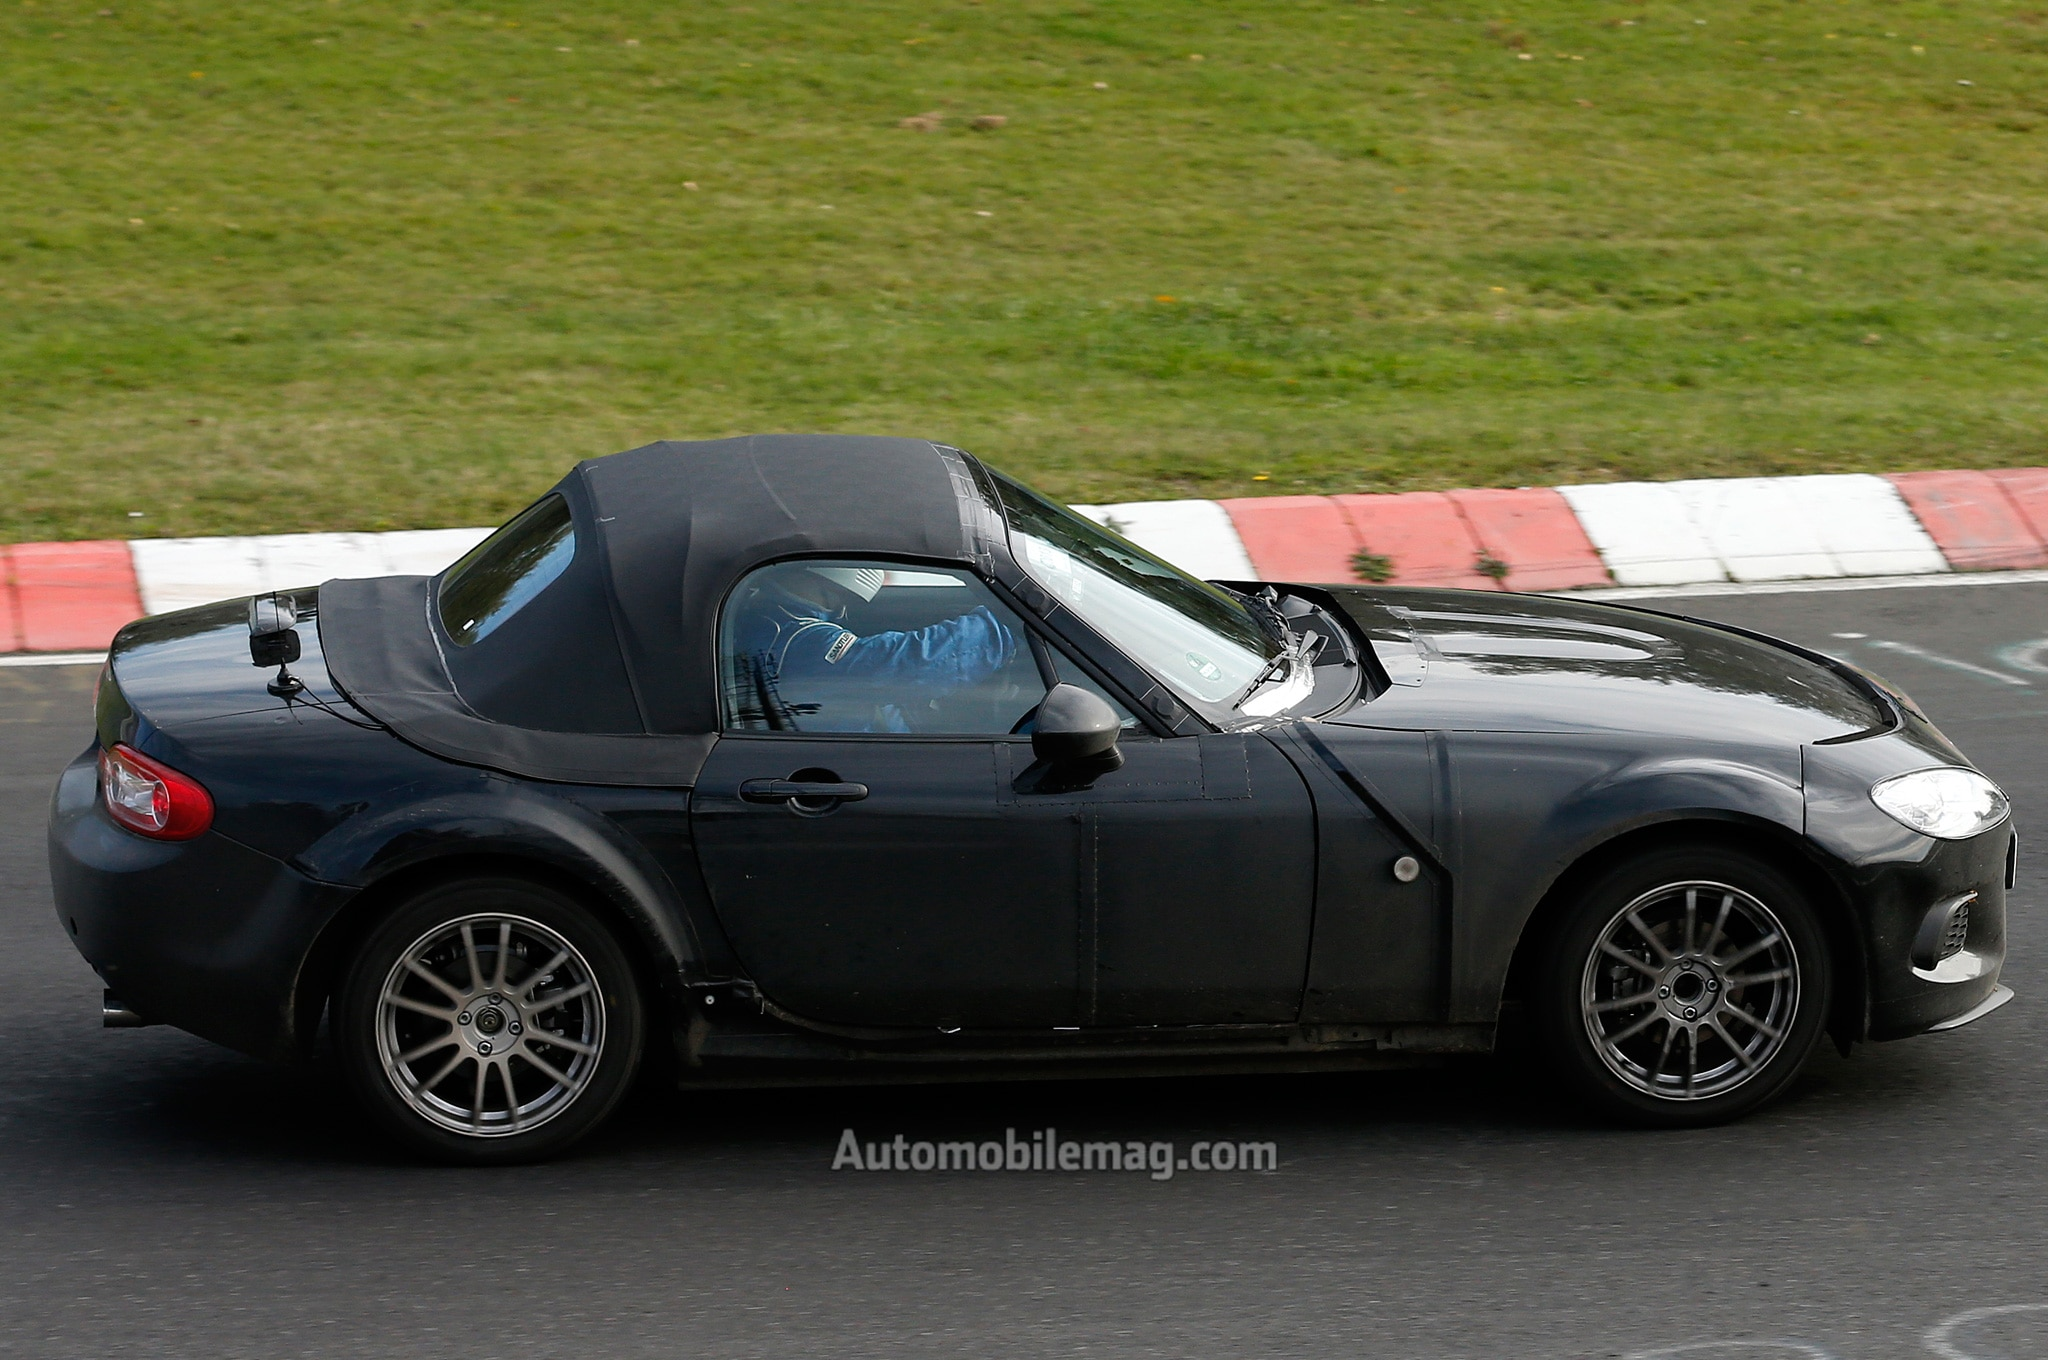 2015 Mazda MX 5 Miata Prototype Side View1